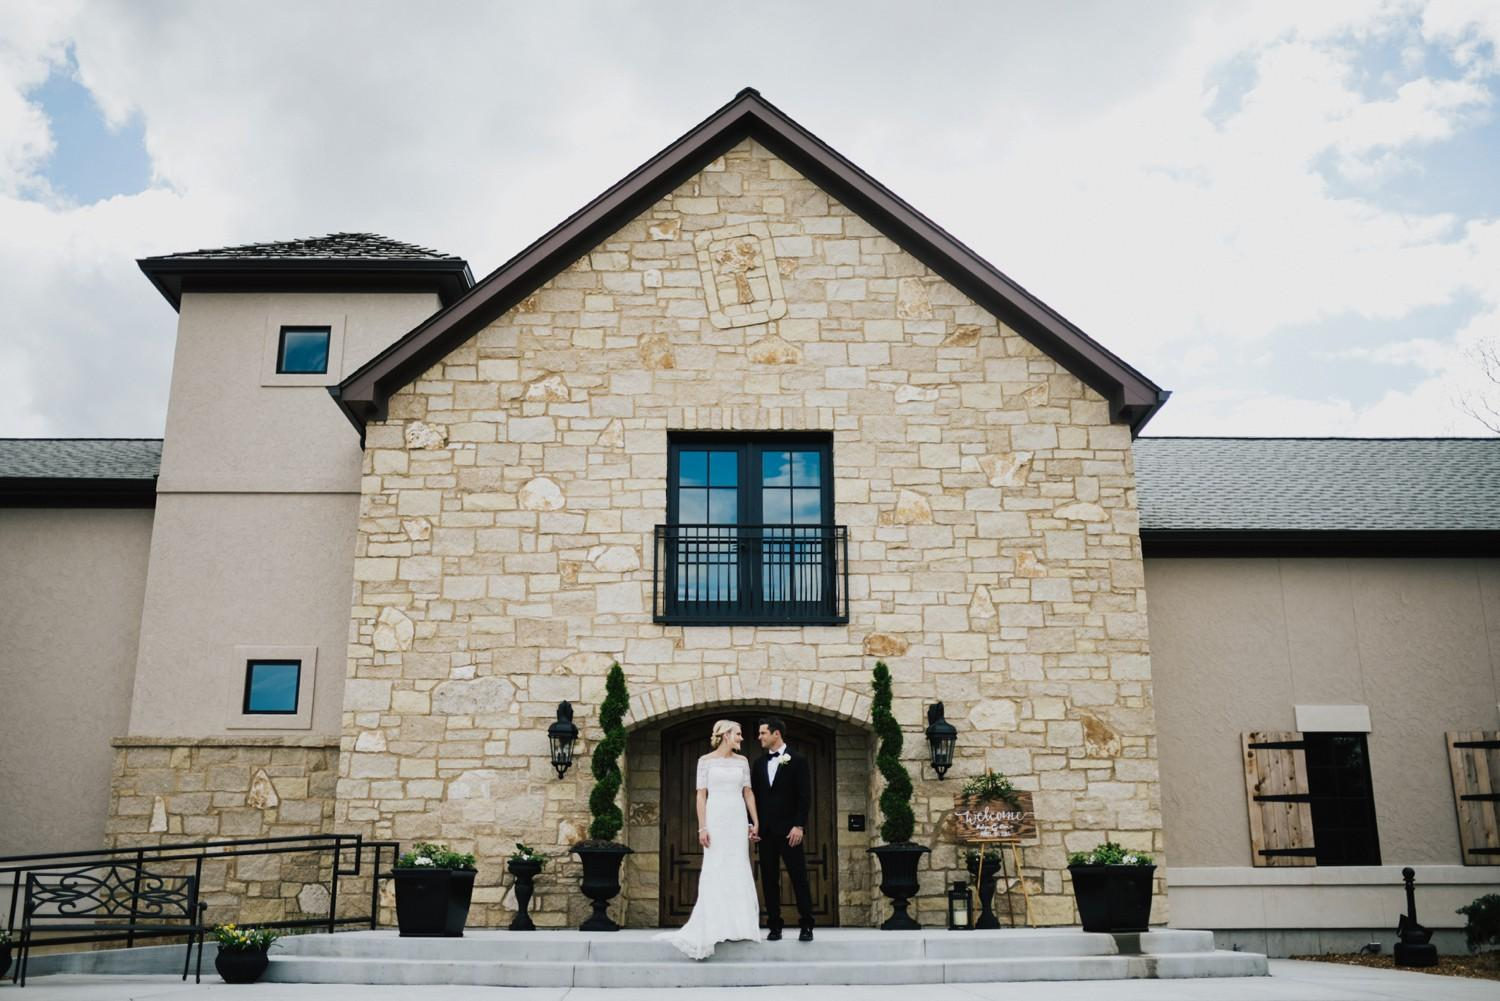 15 Dazzling Wedding Venues In Missouri